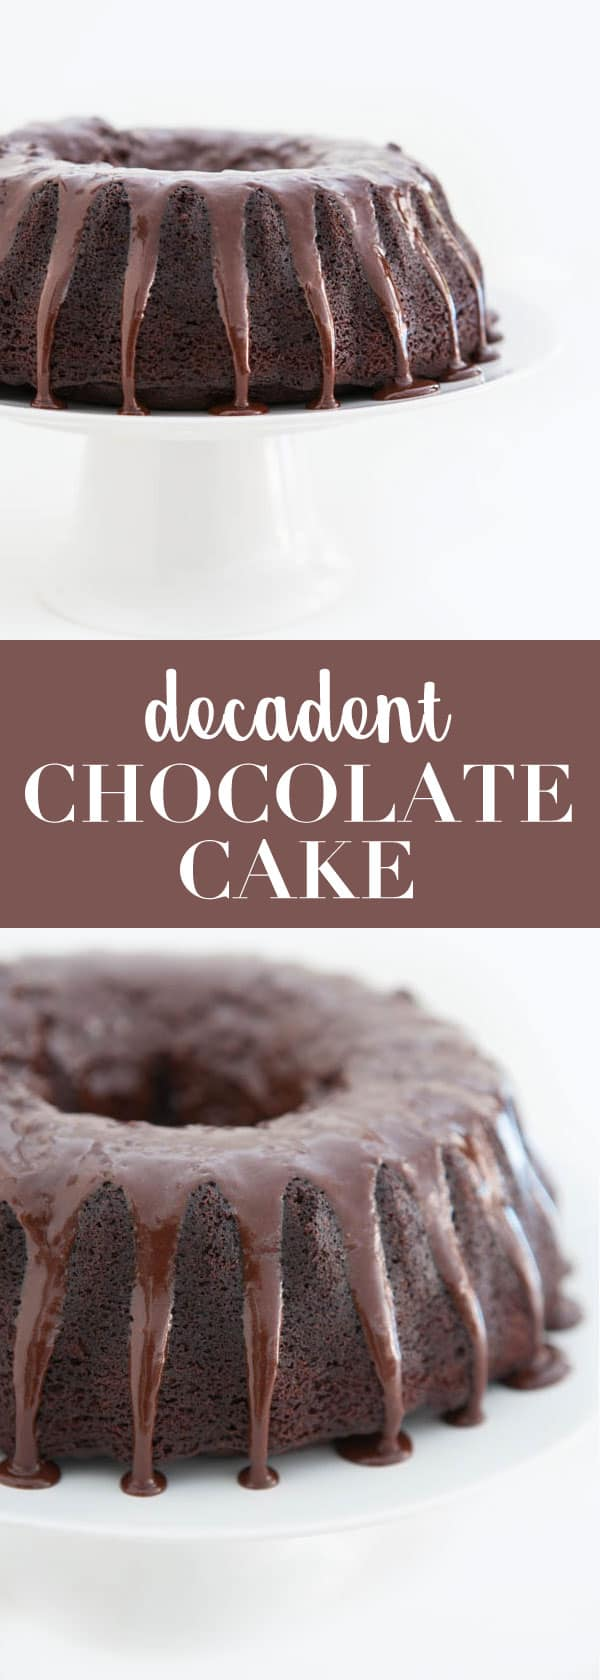 Decadent Chocolate Bundt Cake #recipe #chocolate #cake #dessert